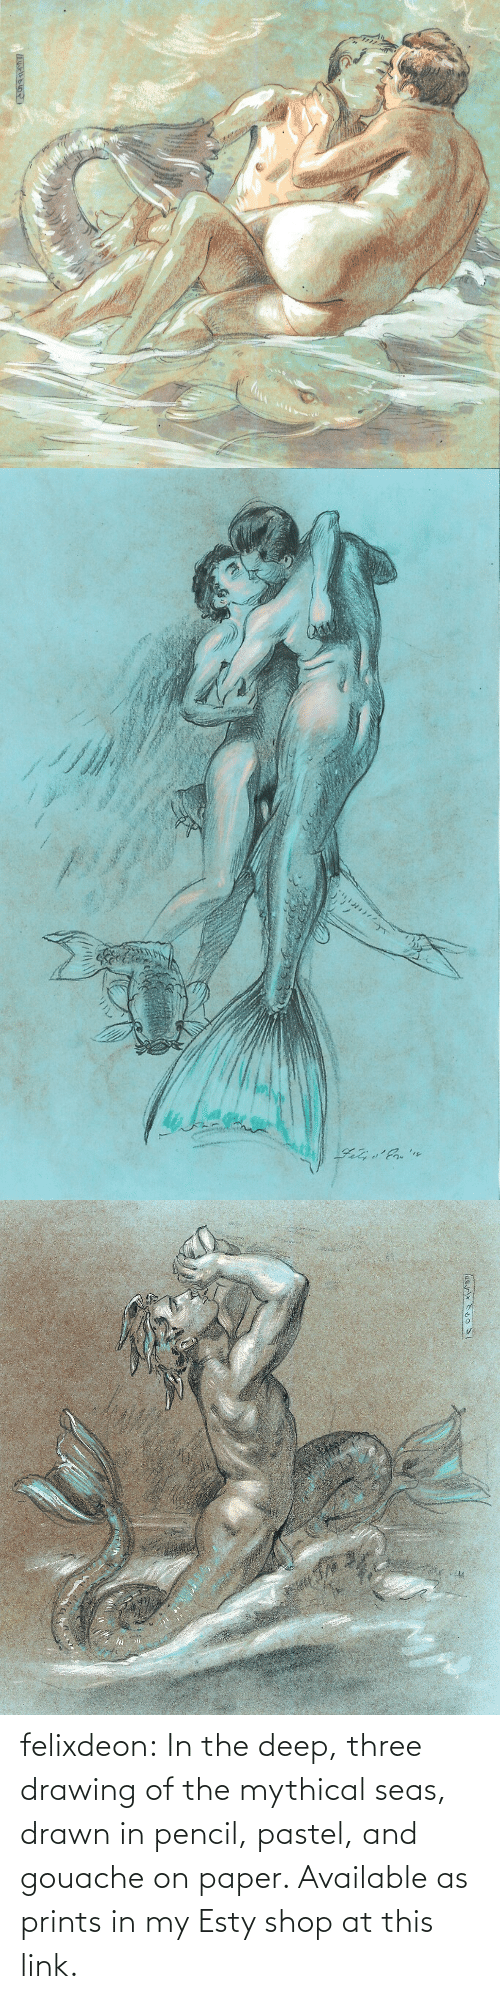 Pencil: felixdeon:  In the deep, three drawing of the mythical seas, drawn in pencil, pastel, and gouache on paper. Available as prints in my Esty shop at this link.